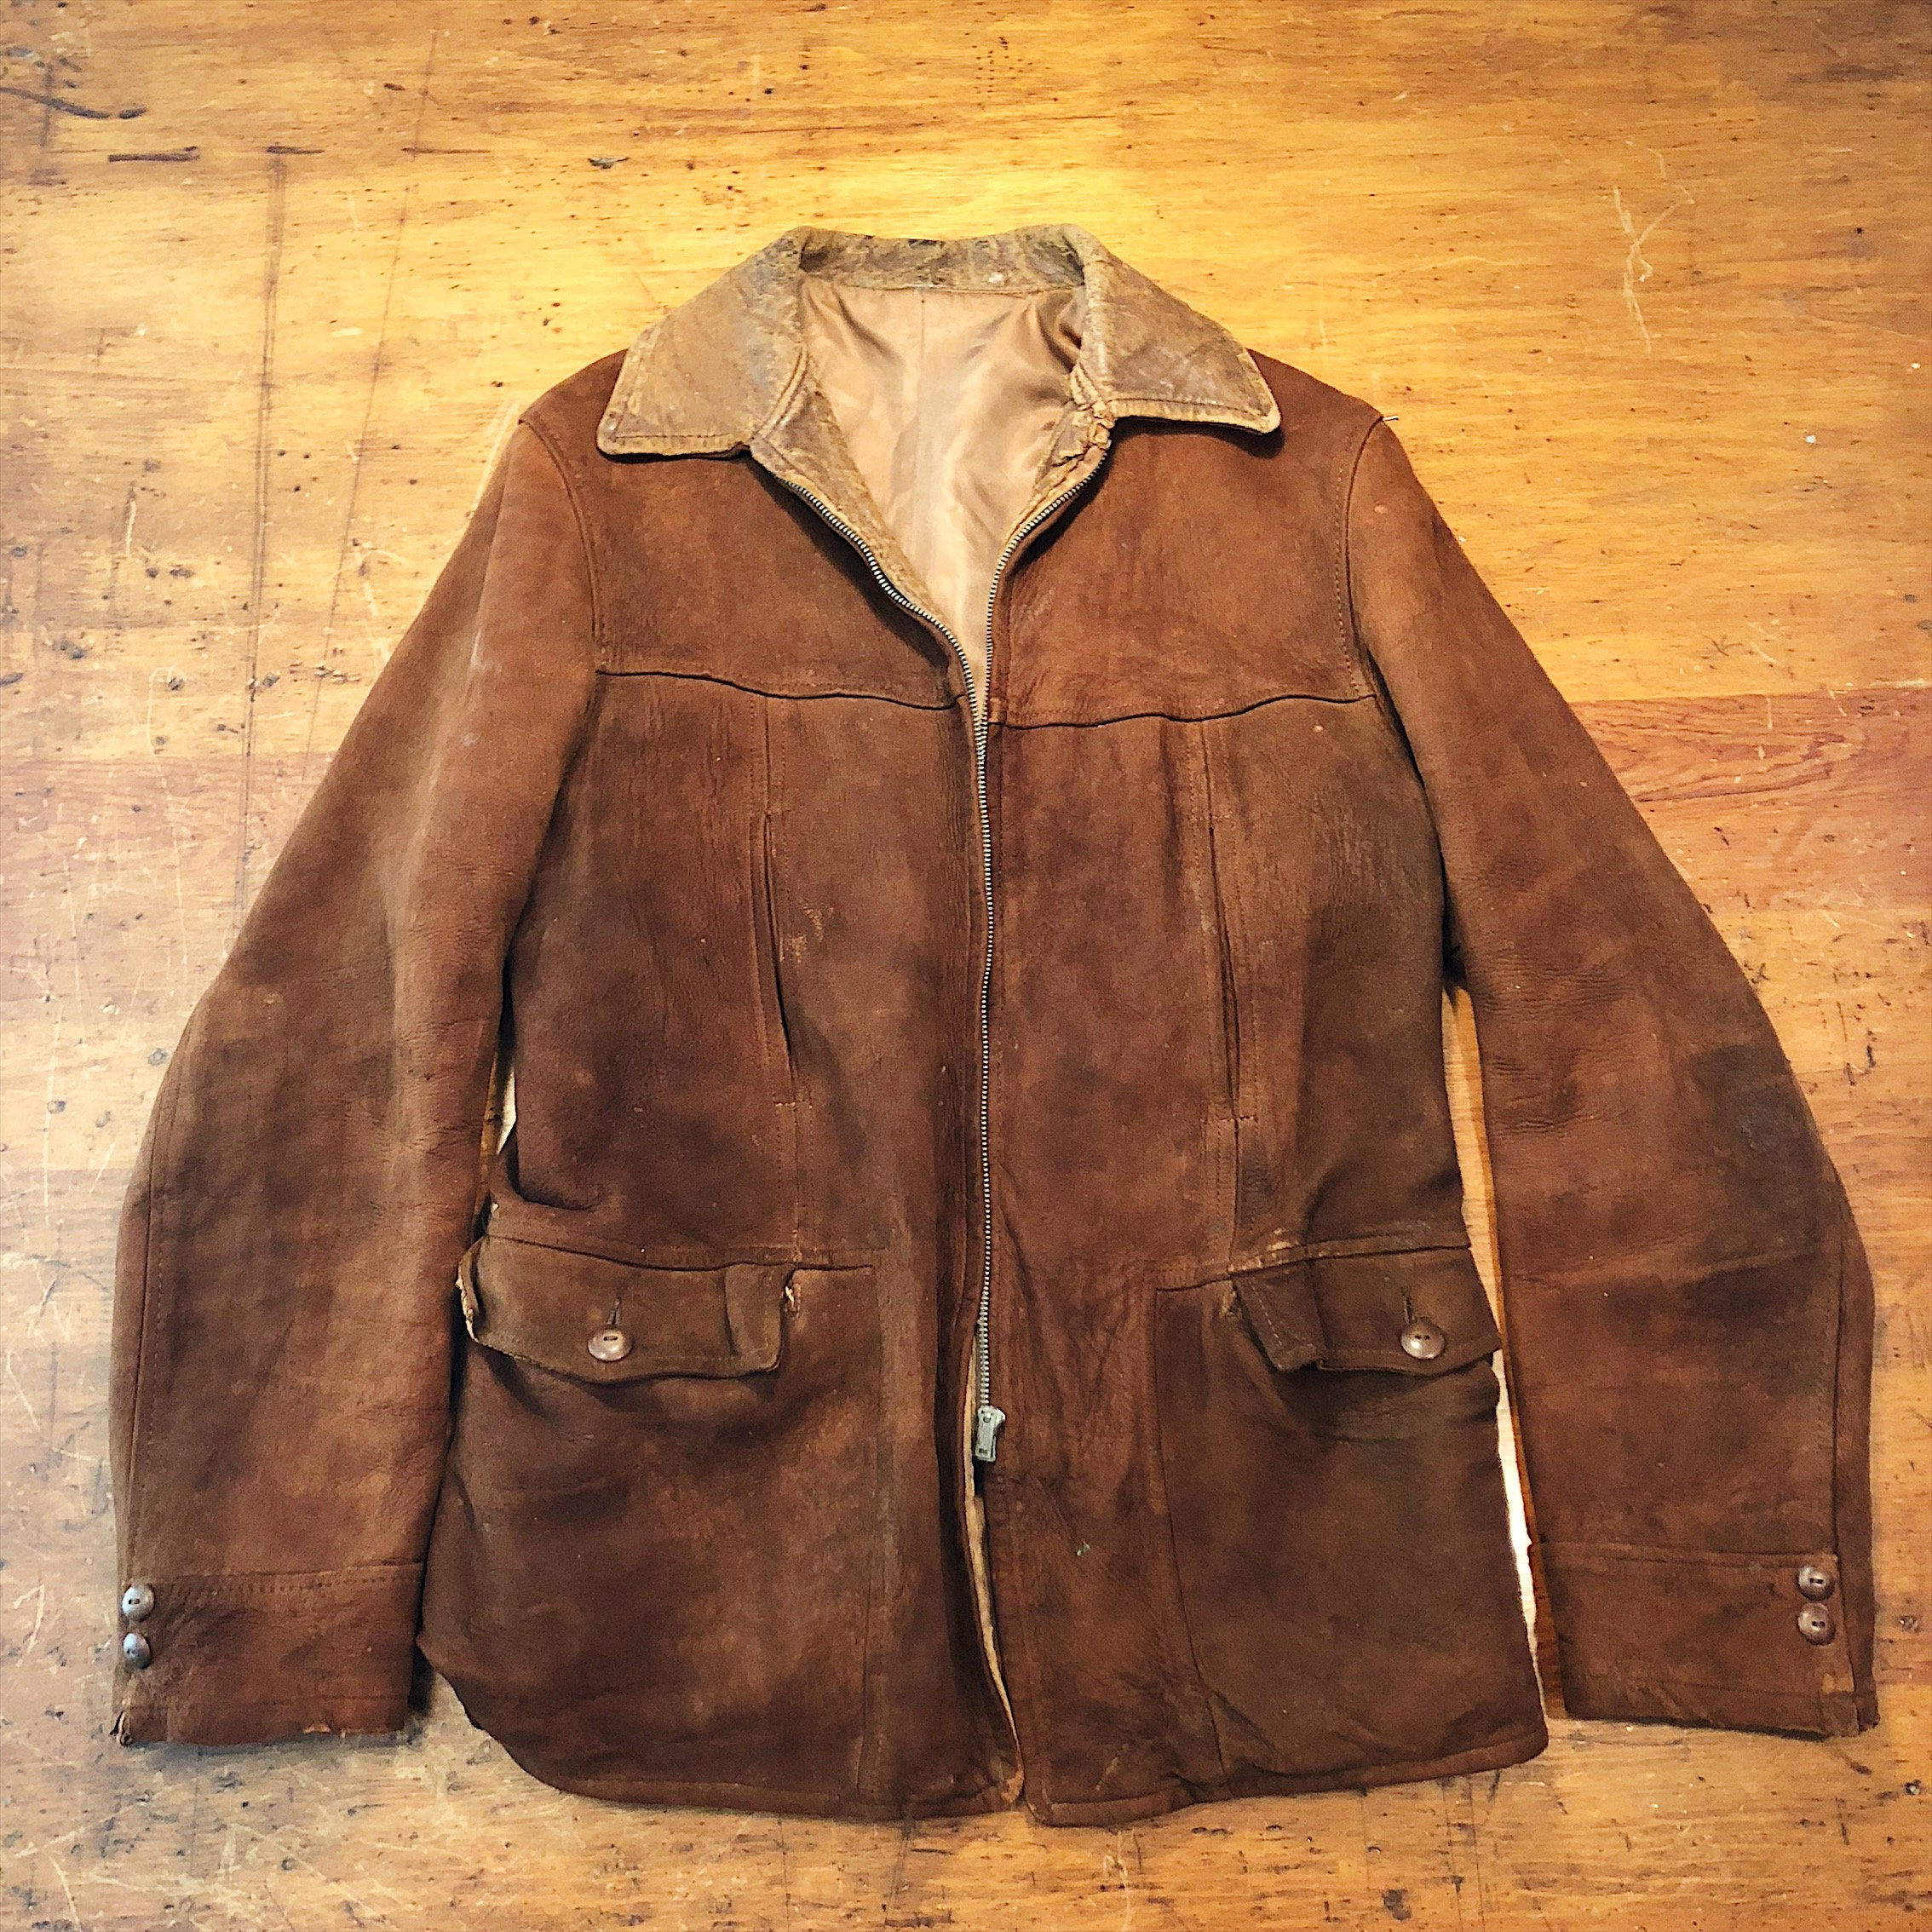 Front view of 1930s Workwear Suede Leather Jacket